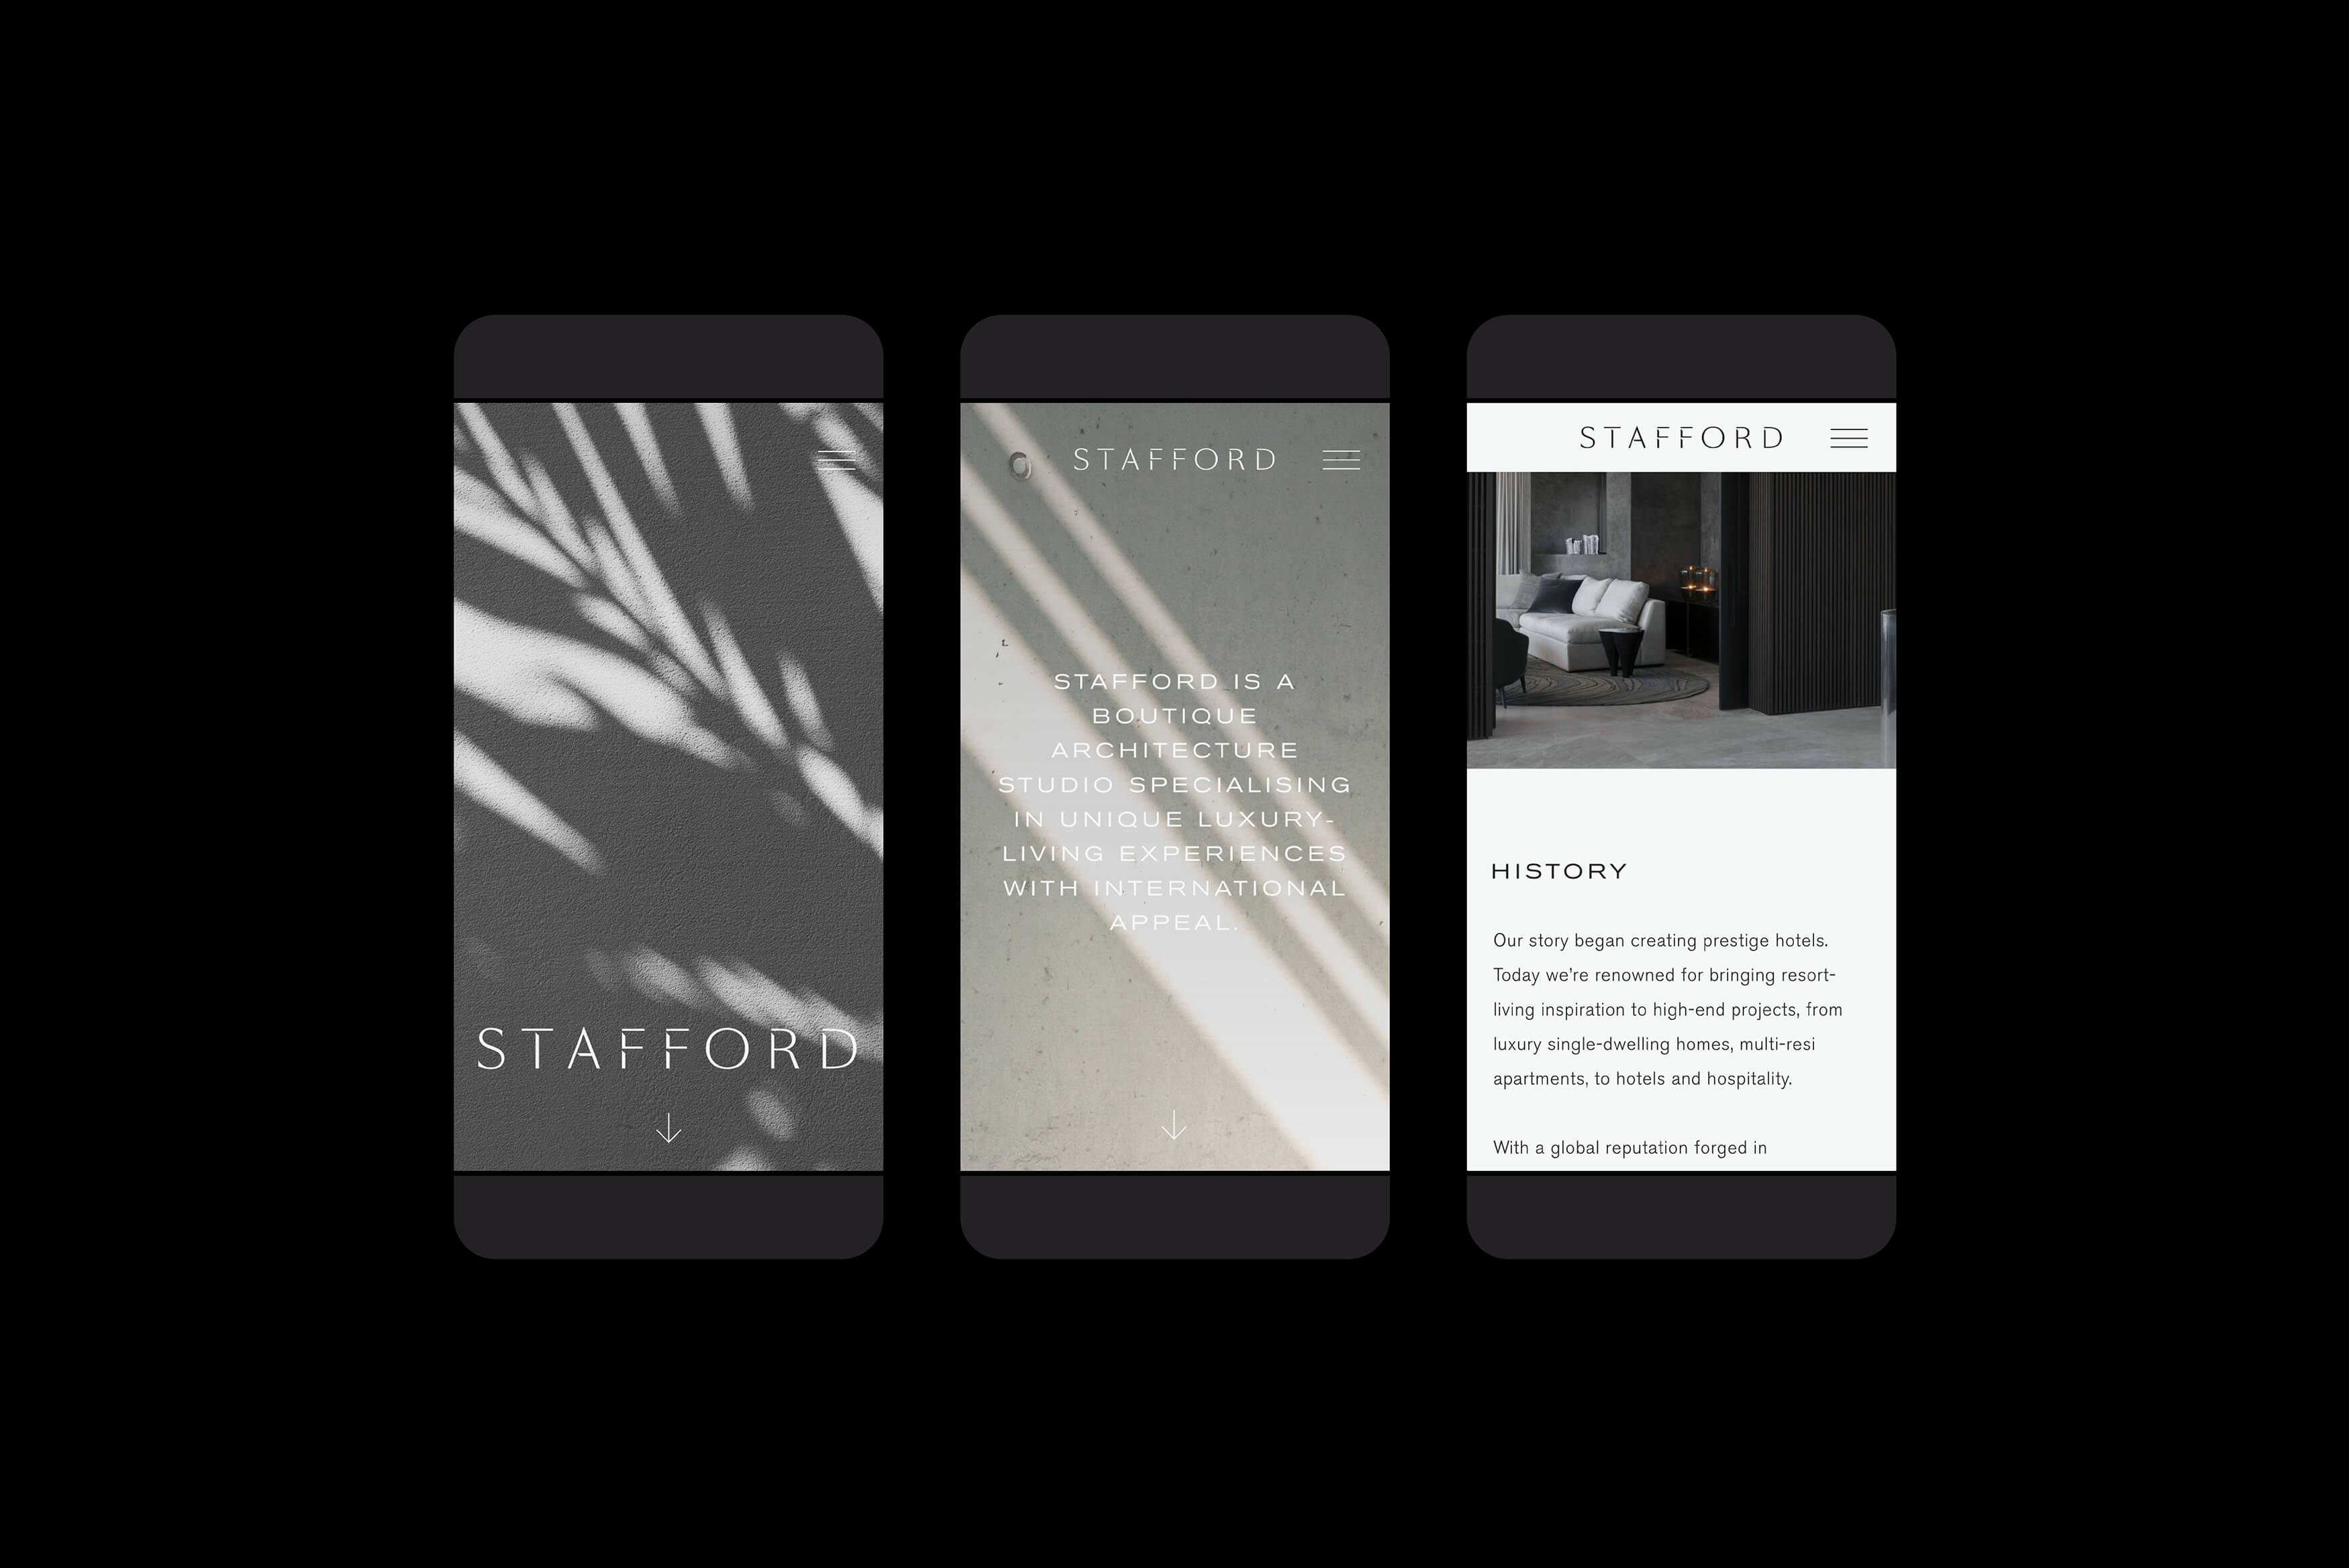 Stafford Architecture - Digital experience, website visual on smartphone